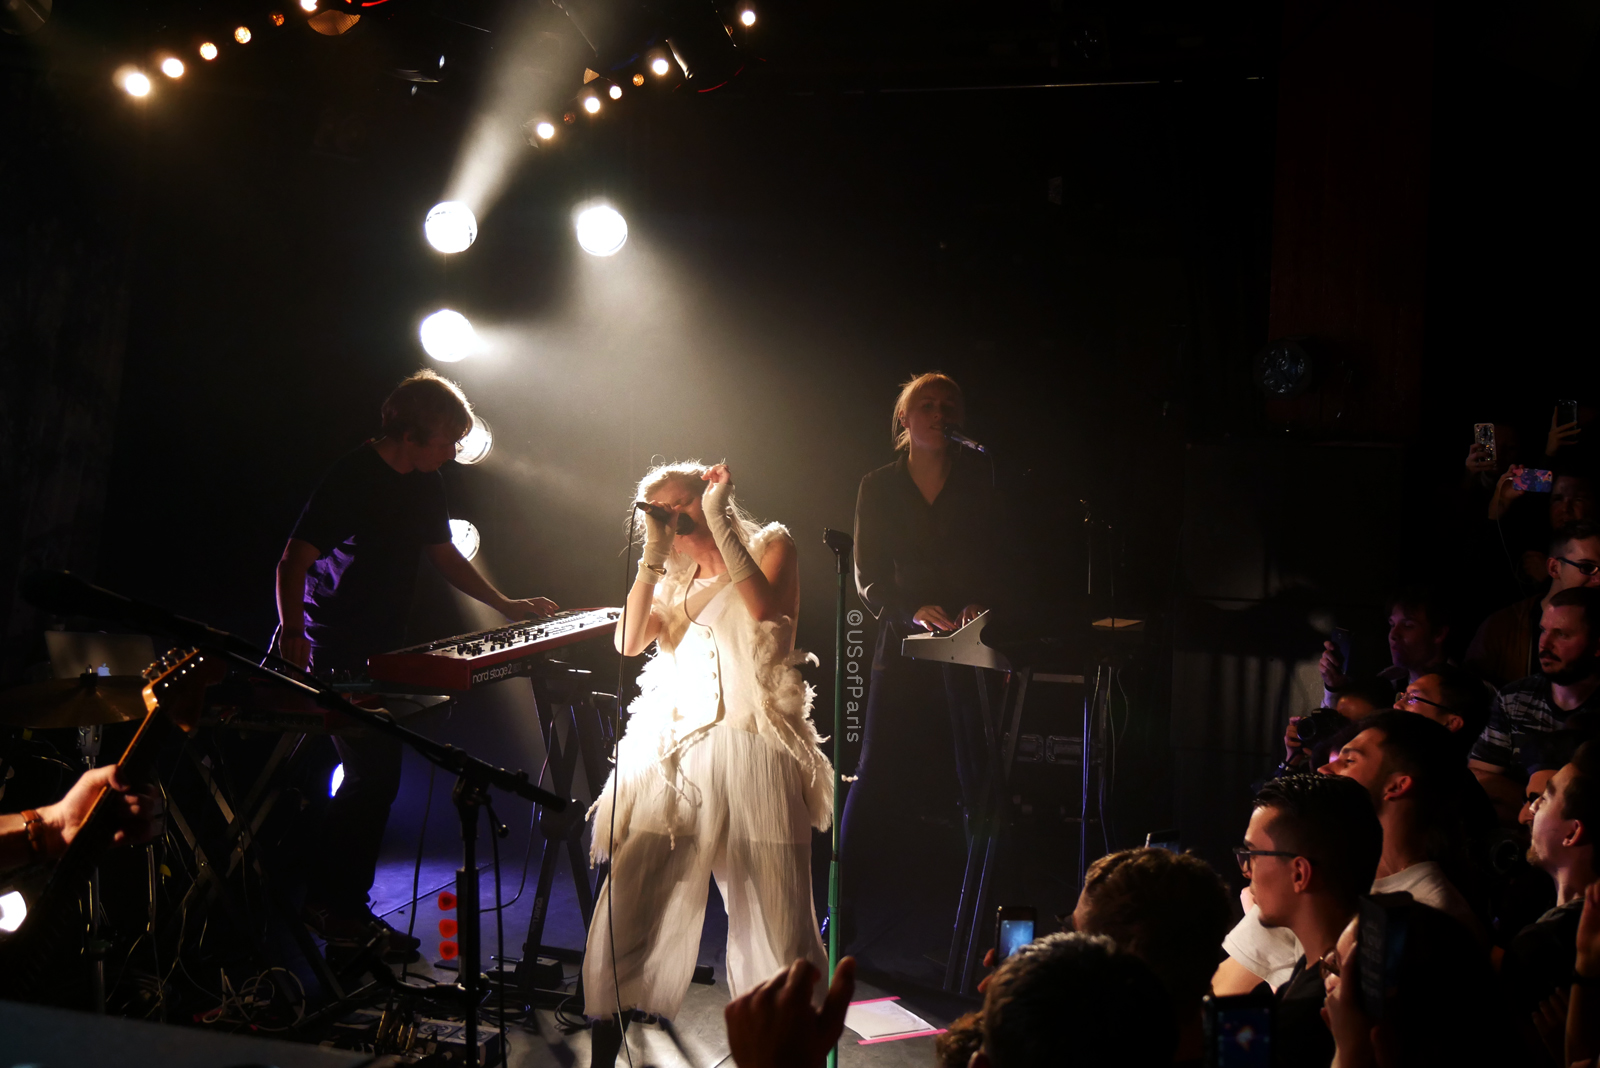 aurora-paris-la-maroquinerie-music-tour-stage-photo-usofparis-blog